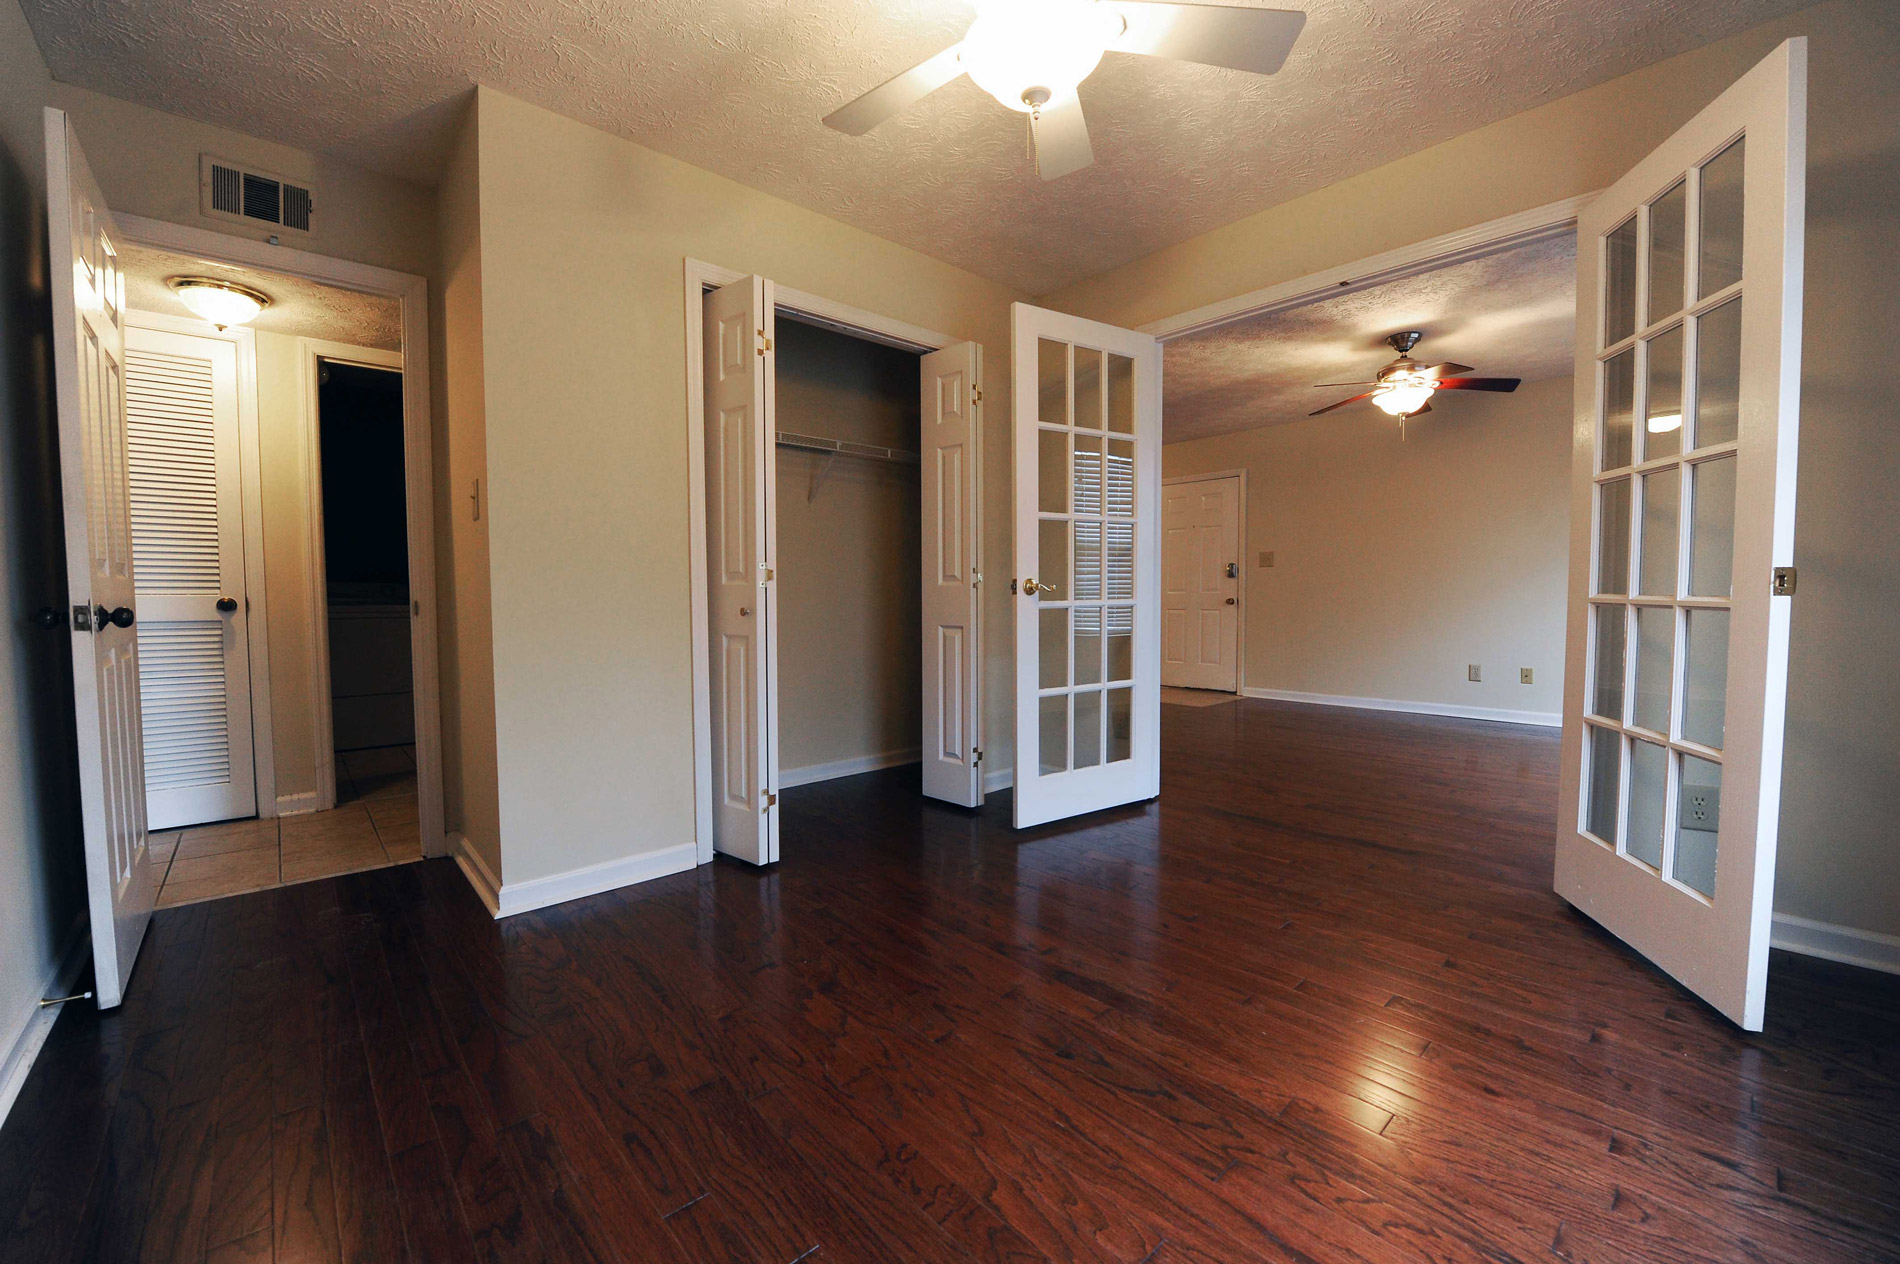 Creek Pointe 100 Downing Way Athens Ga 30606 Rental Services Parker And Associates